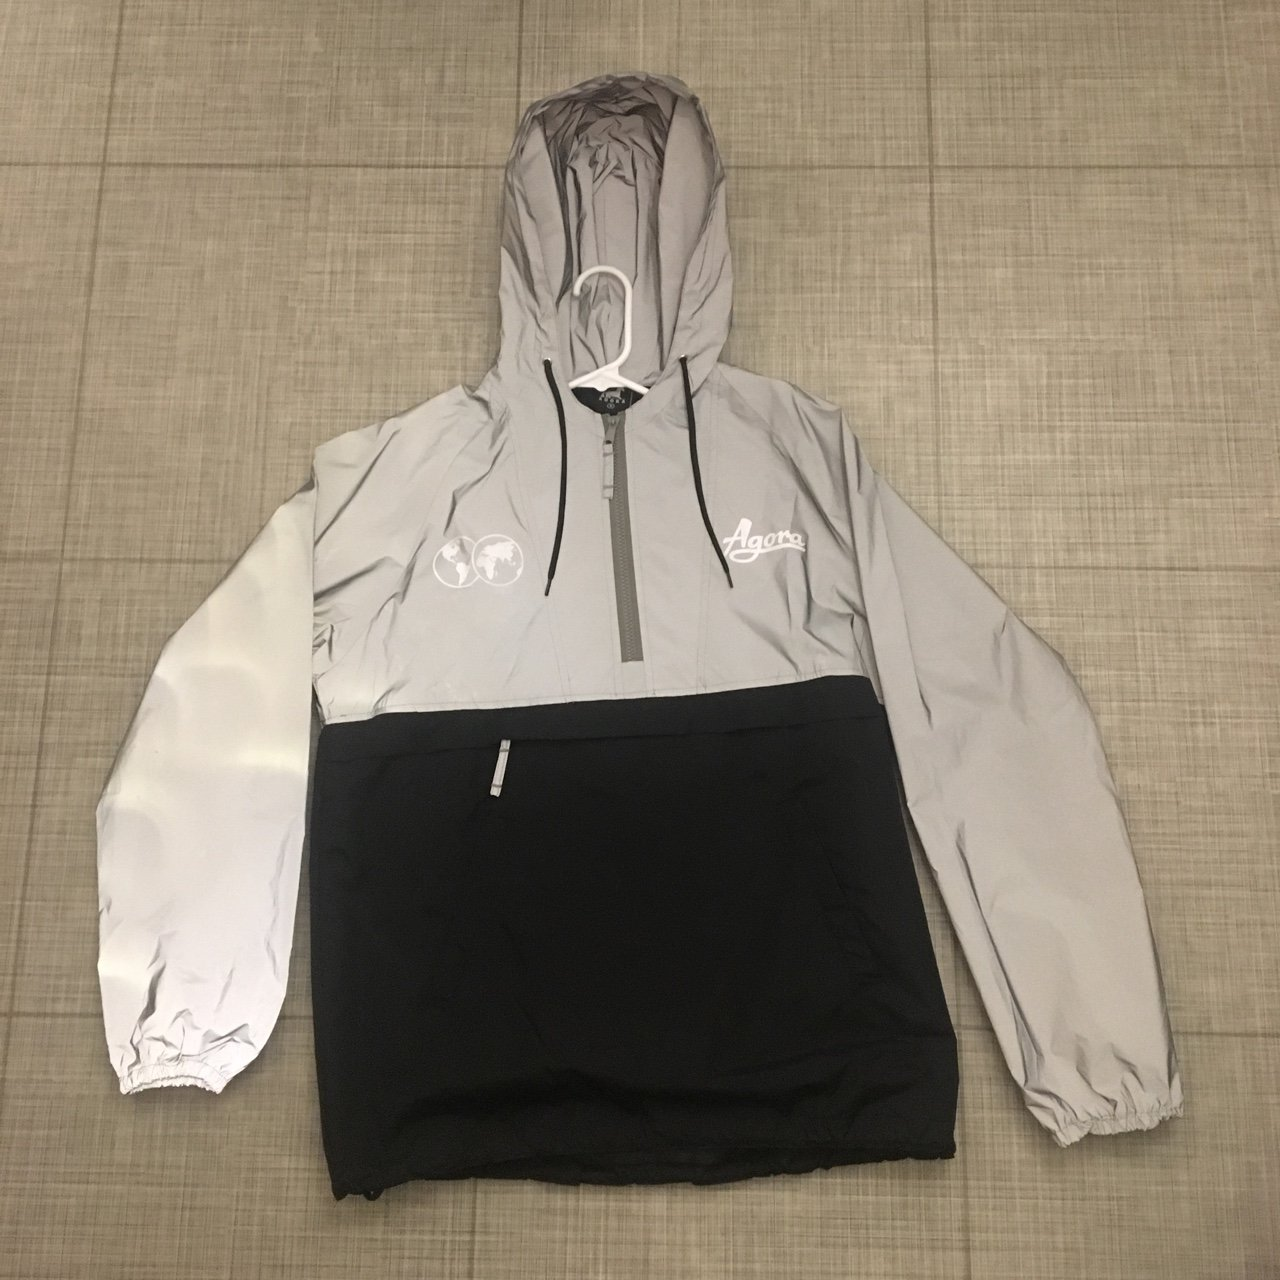 787bfb1e54 3M Reflective Agora Windbreaker. Fits Small - Large Very and - Depop